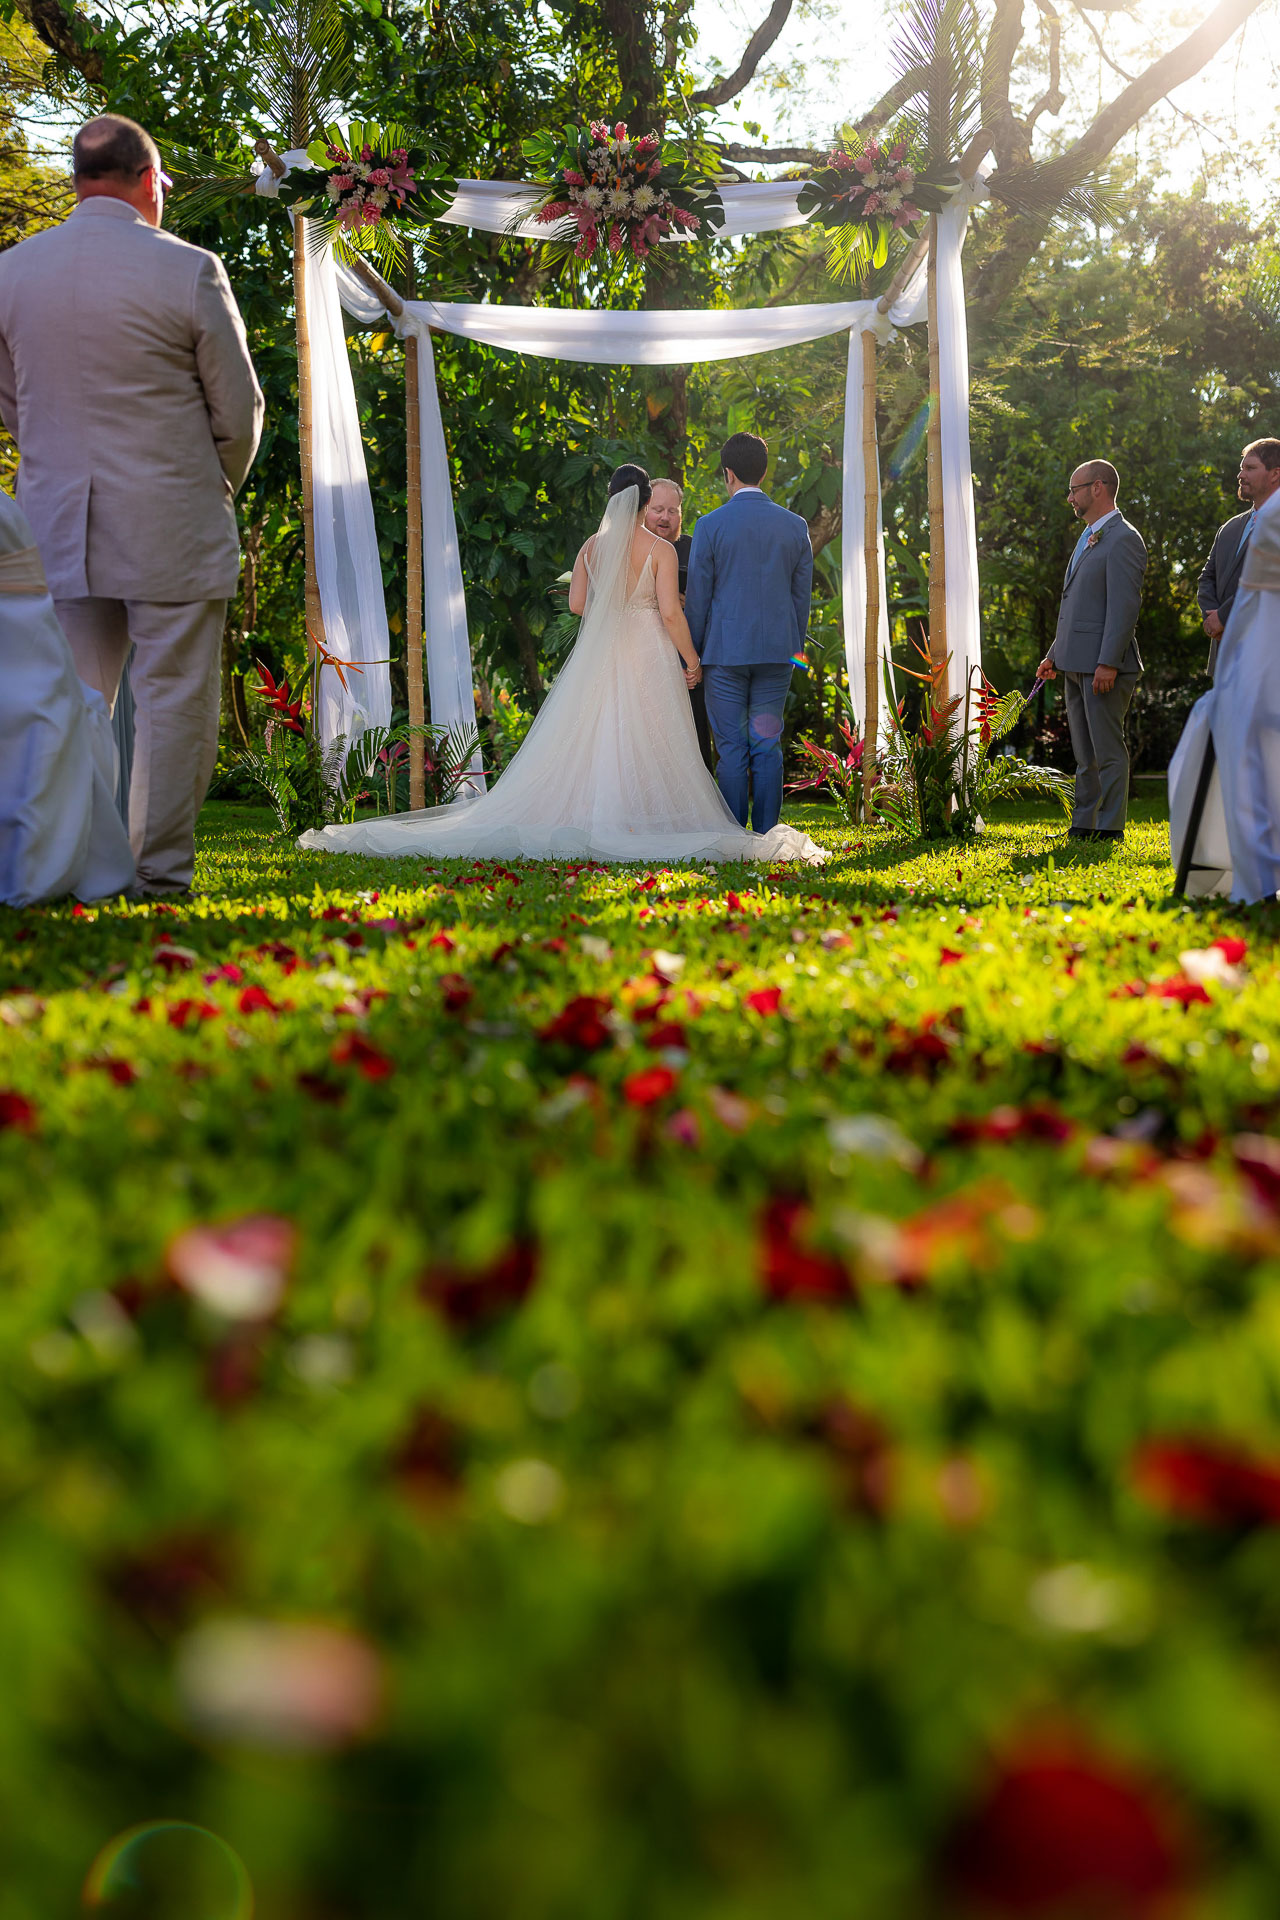 Costa Rica Outdoor Elopement Ceremony Picture   ceremony set up with rose petals